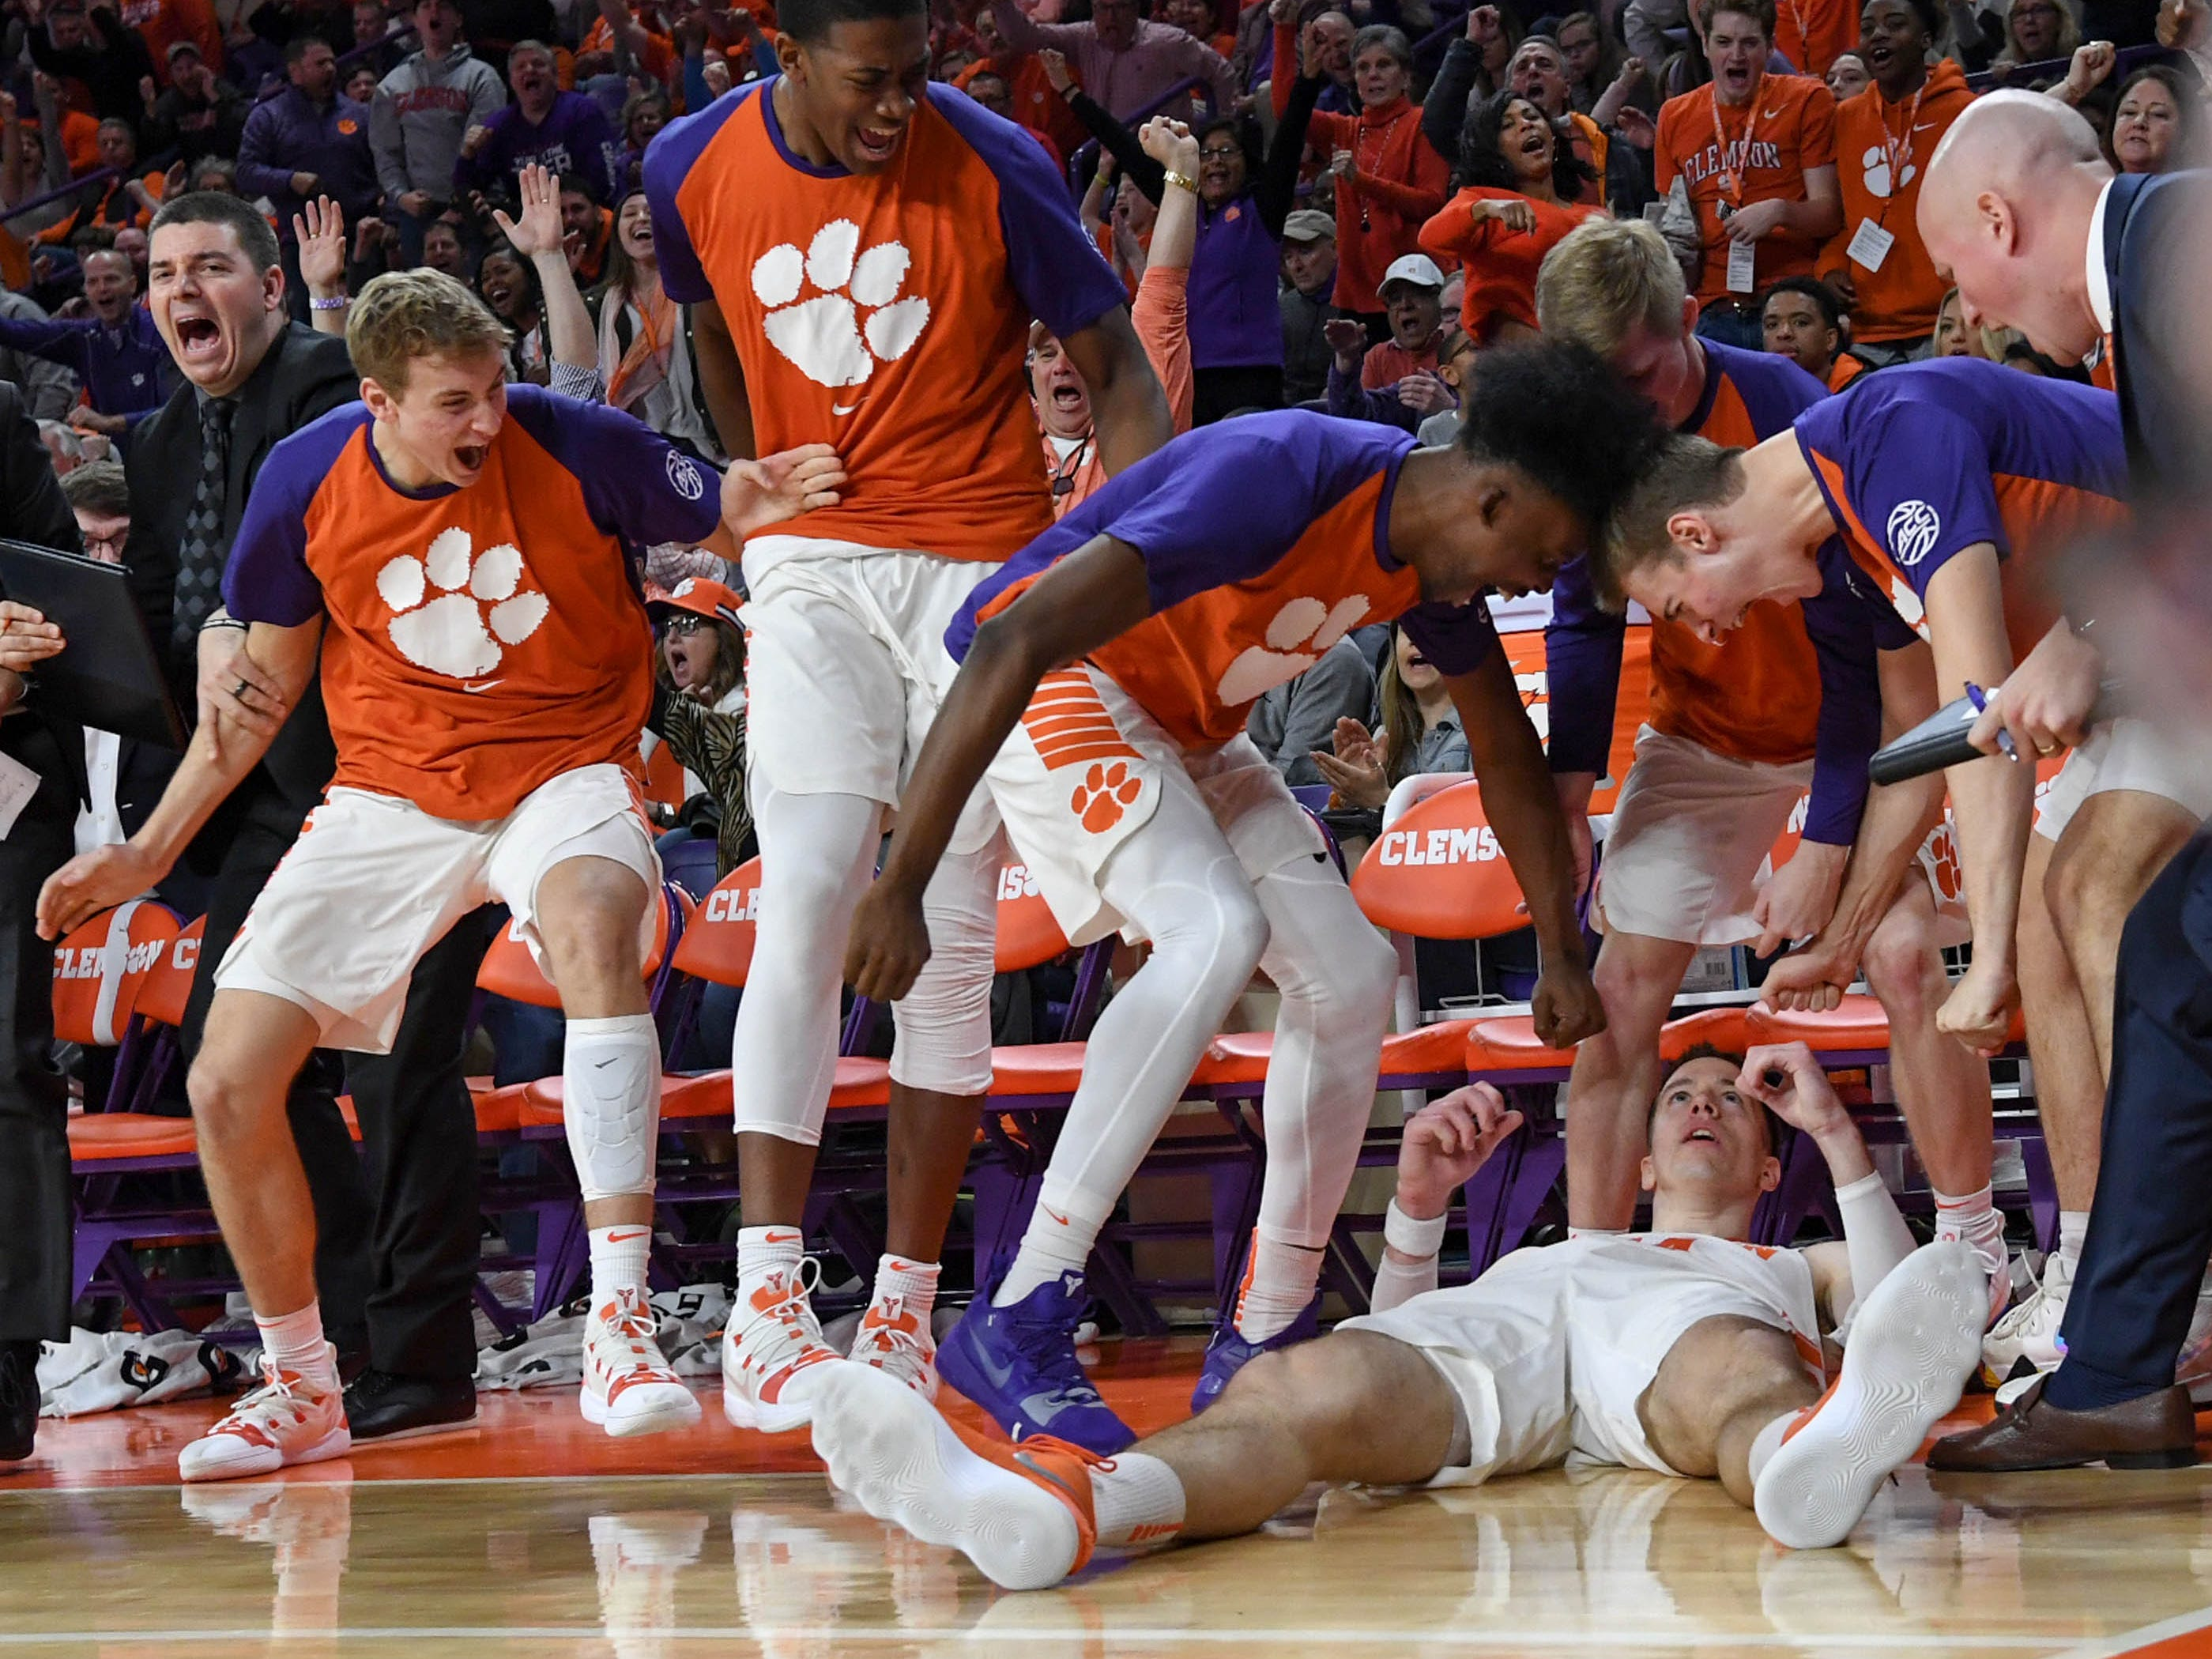 Clemson forward David Skara (24) is congratulated by teammates after making a basket and being fouled by Syracuse during the second half in Littlejohn Coliseum in Clemson Saturday, March 9, 2019.